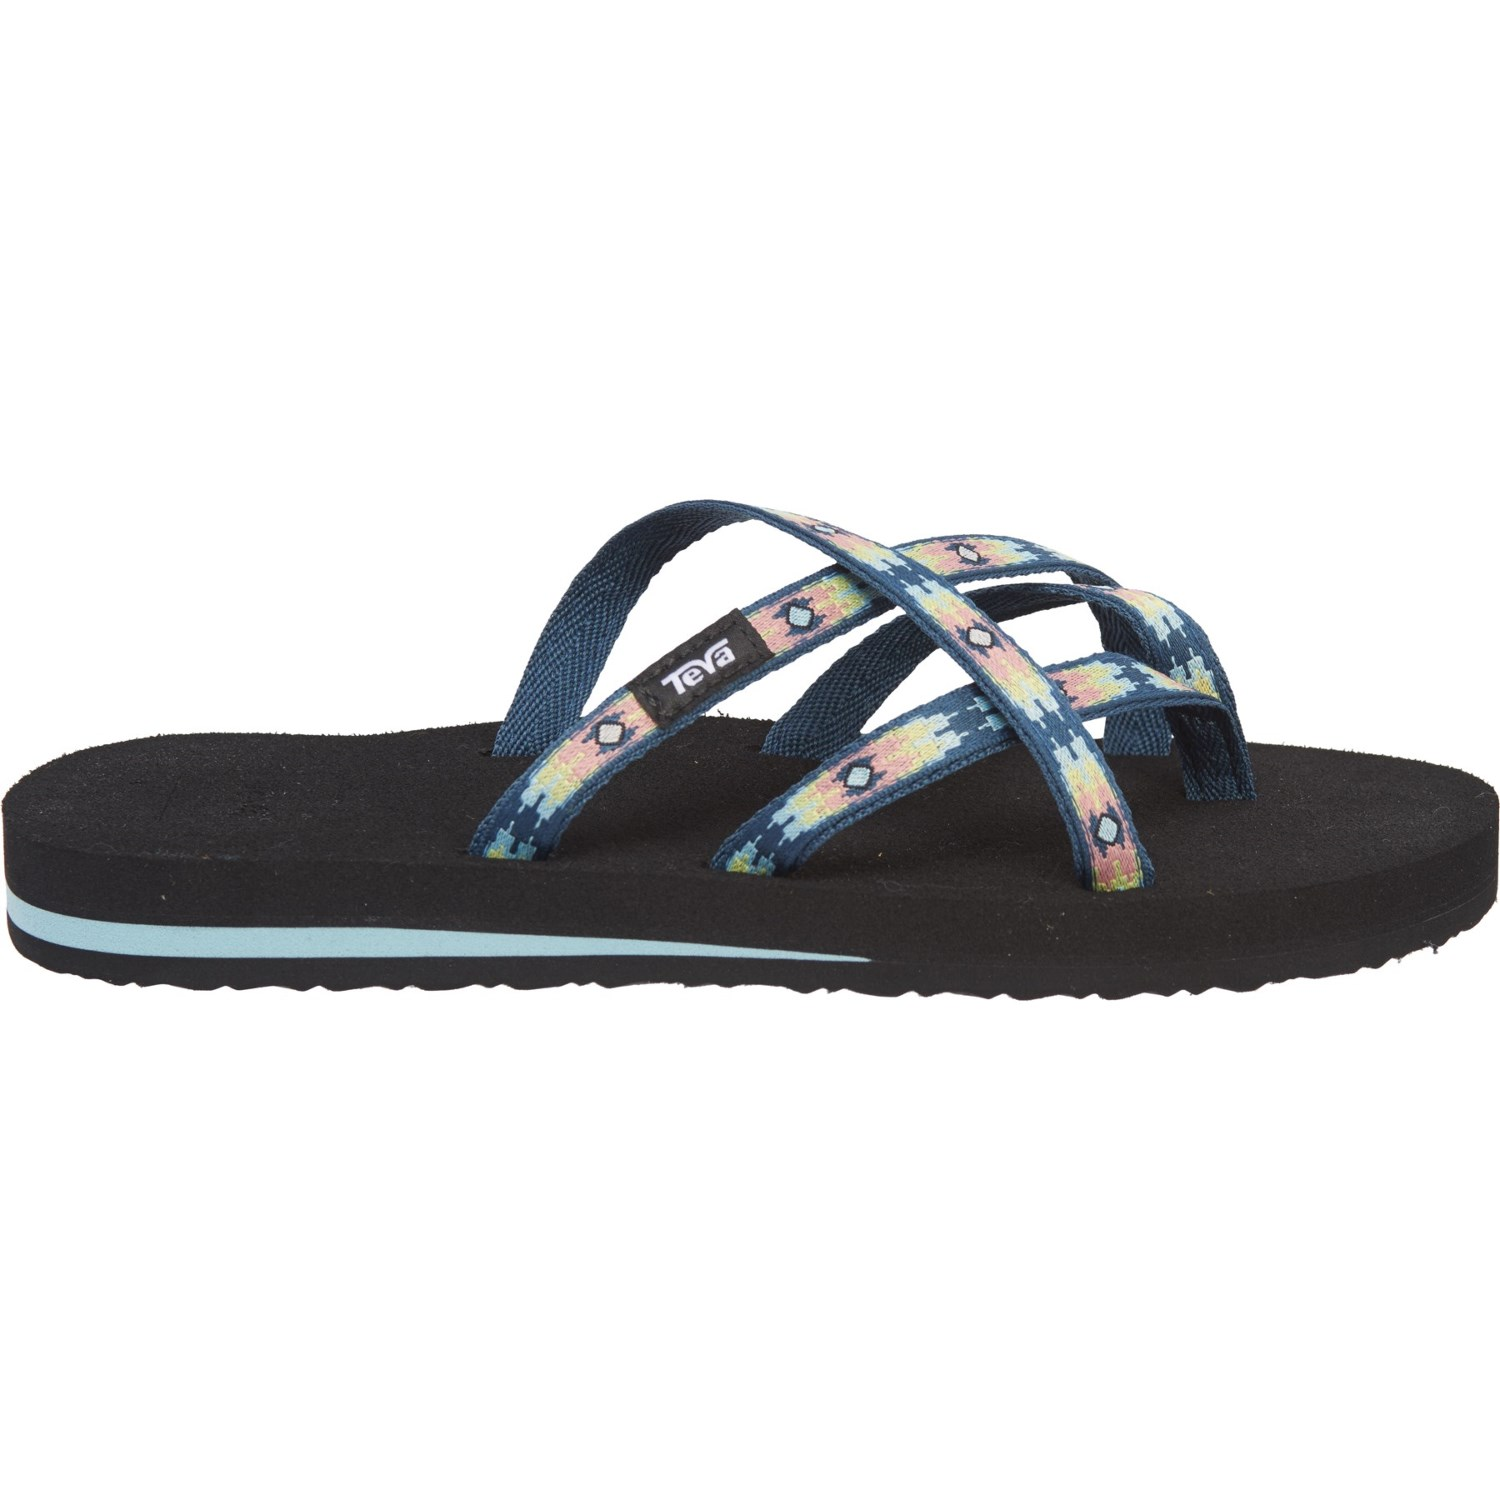 1ab367cd3852 Teva Olowahu Flip-Flops (For Women) - Save 35%